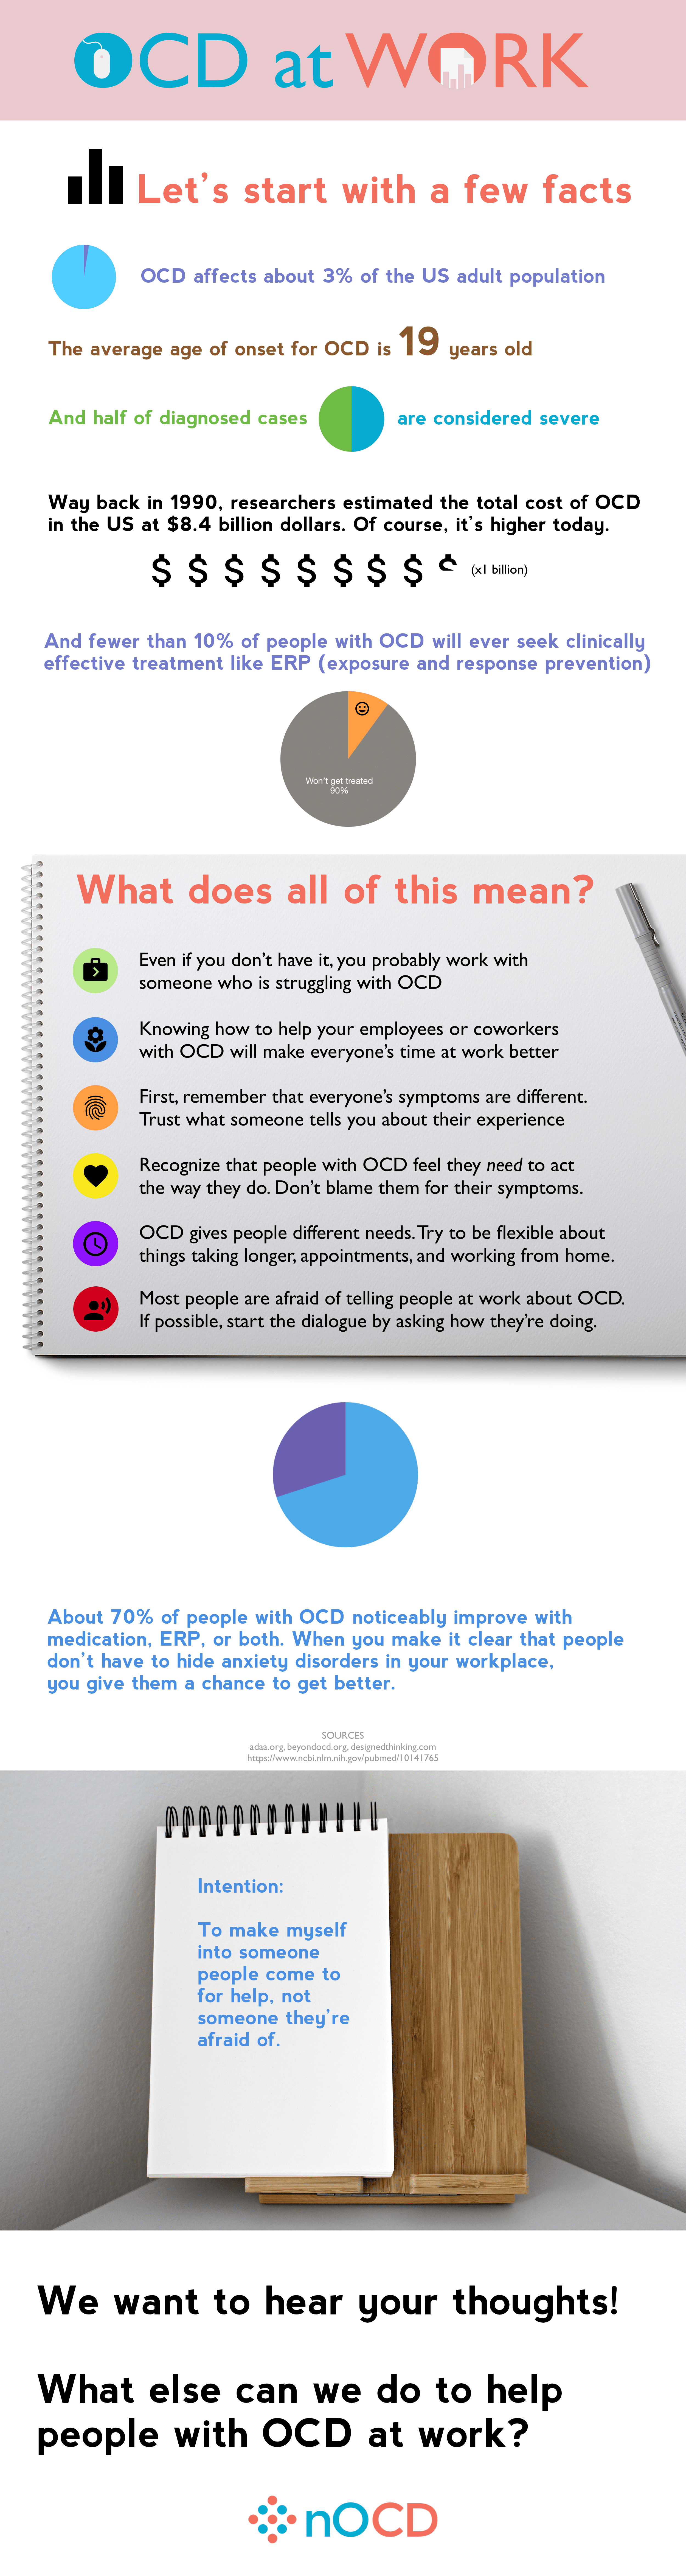 Infographic with statistics about OCD at work